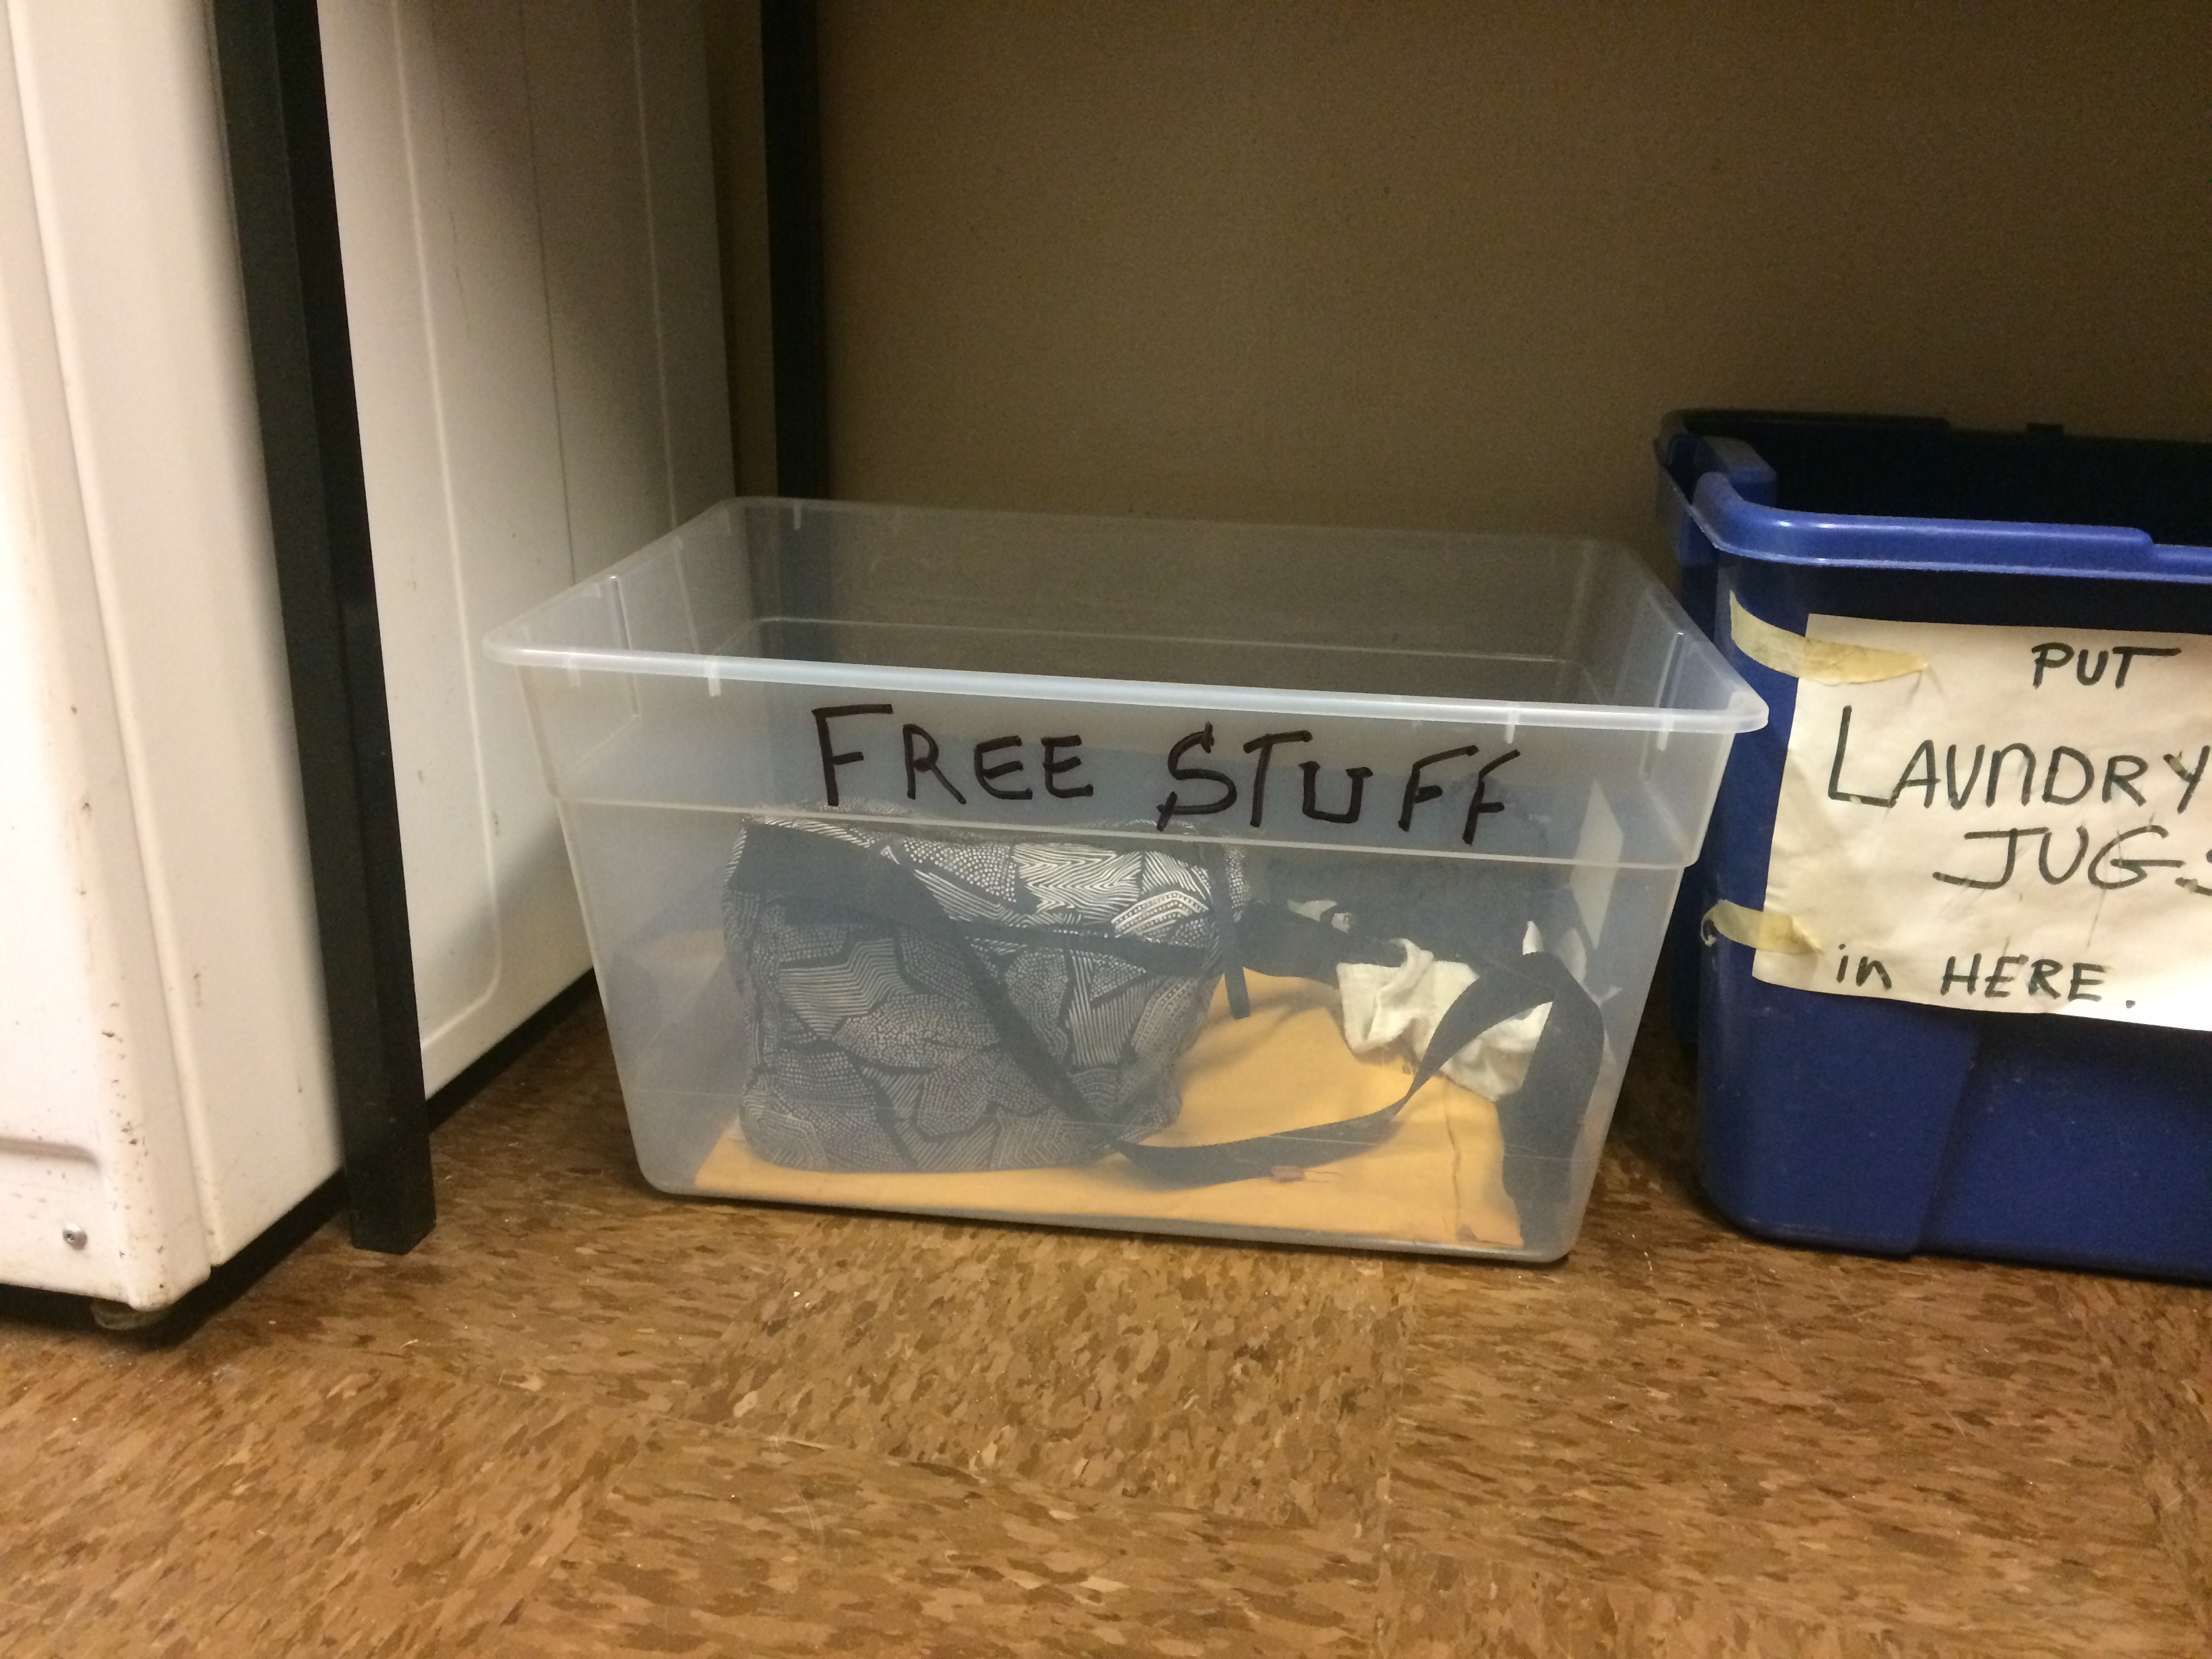 Free stuff box in the laundry room of Jacquie Ottman's NYC apartment building.